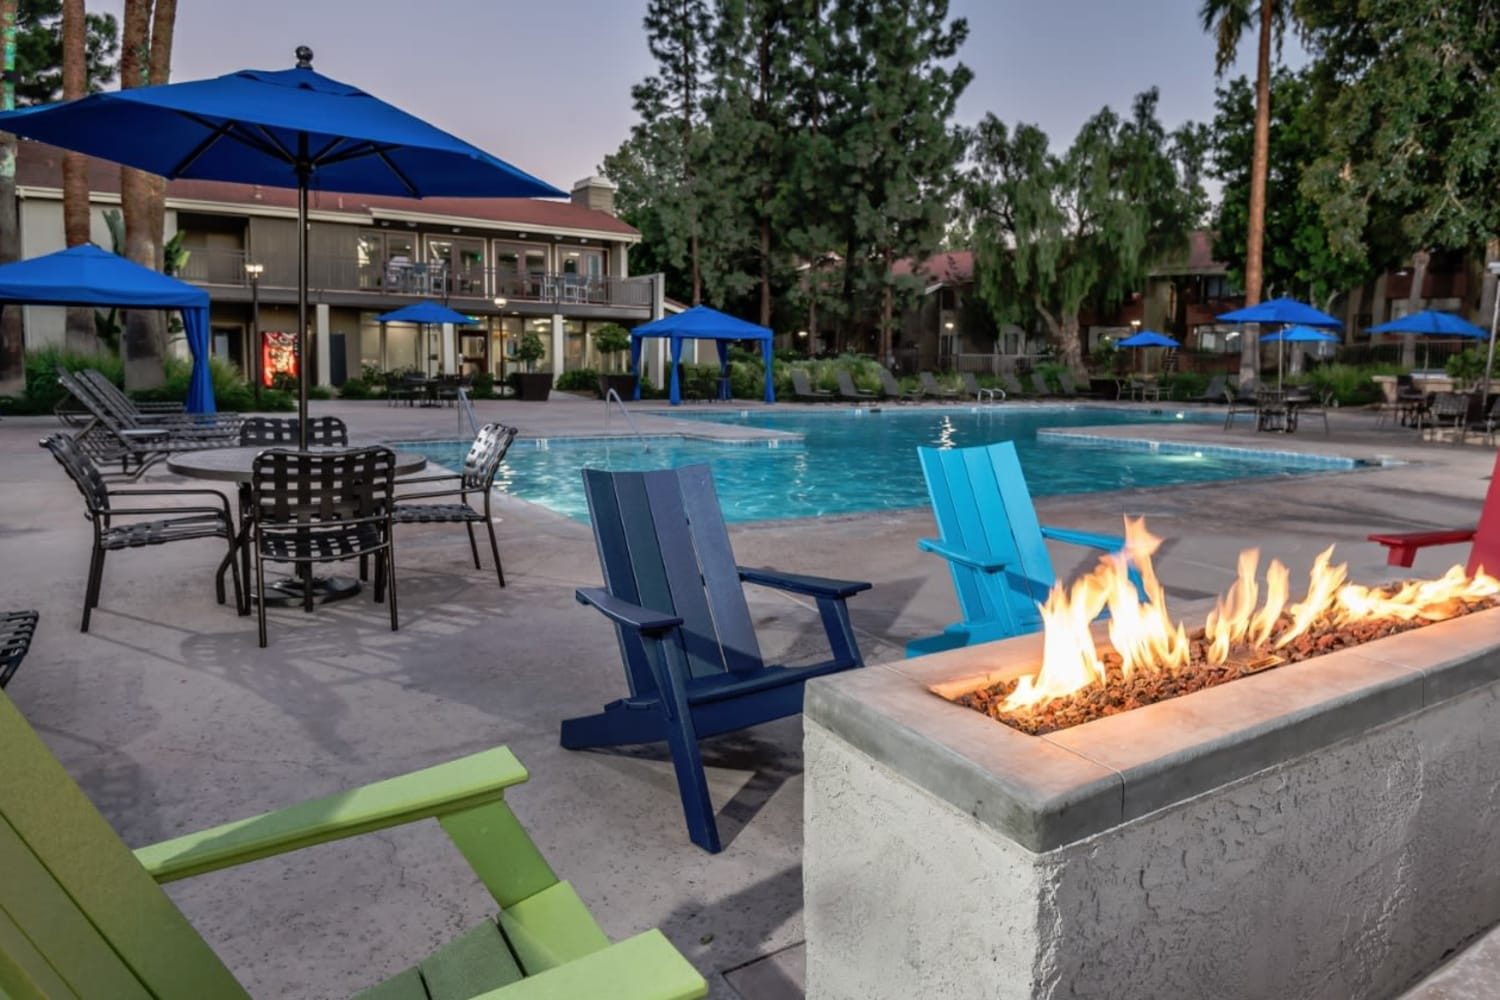 Fire pit at Parcwood Apartments in Corona, California